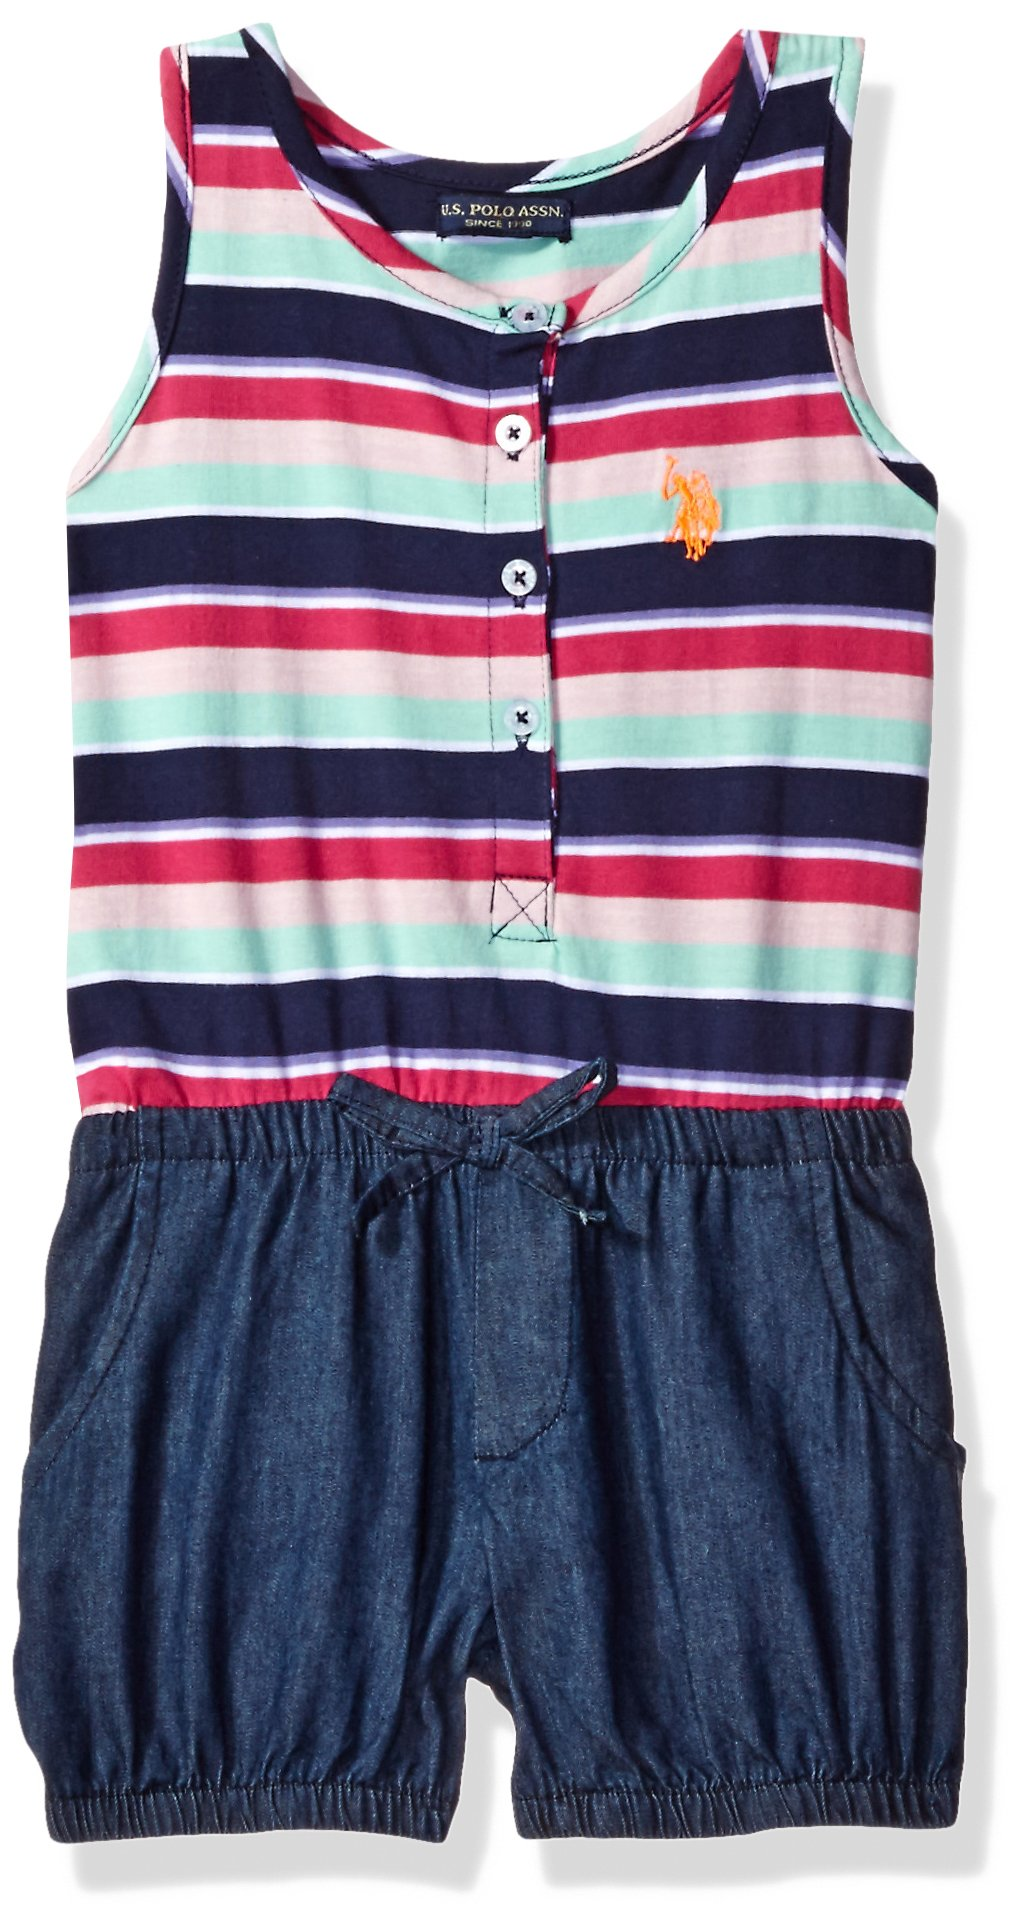 U.S. Polo Assn.. Toddler Girls' Poplin Tank and Denim Bubble Short Romper, Peacoat, 2T by U.S. Polo Assn. (Image #1)